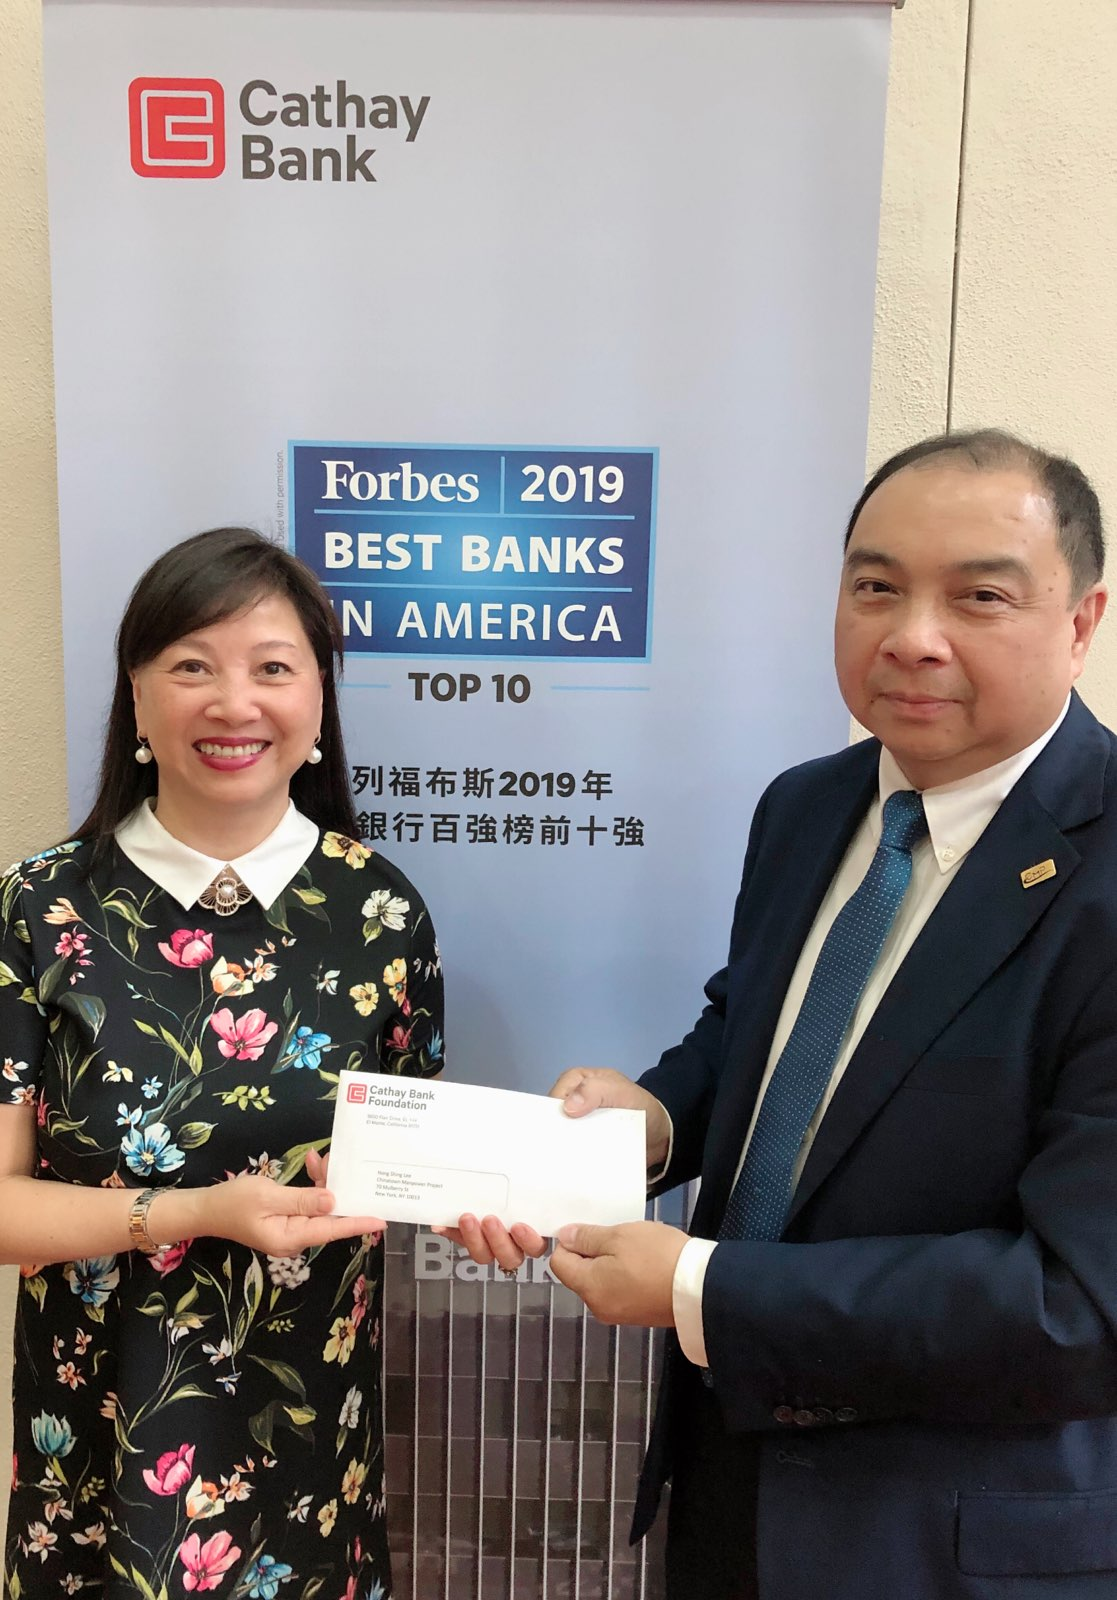 Cathay Bank Senior Vice President  Ms. Elizabeth Lee  (left) is handing over the donation check to CMP Executive Director  Mr. Hong Shing Lee  (right)